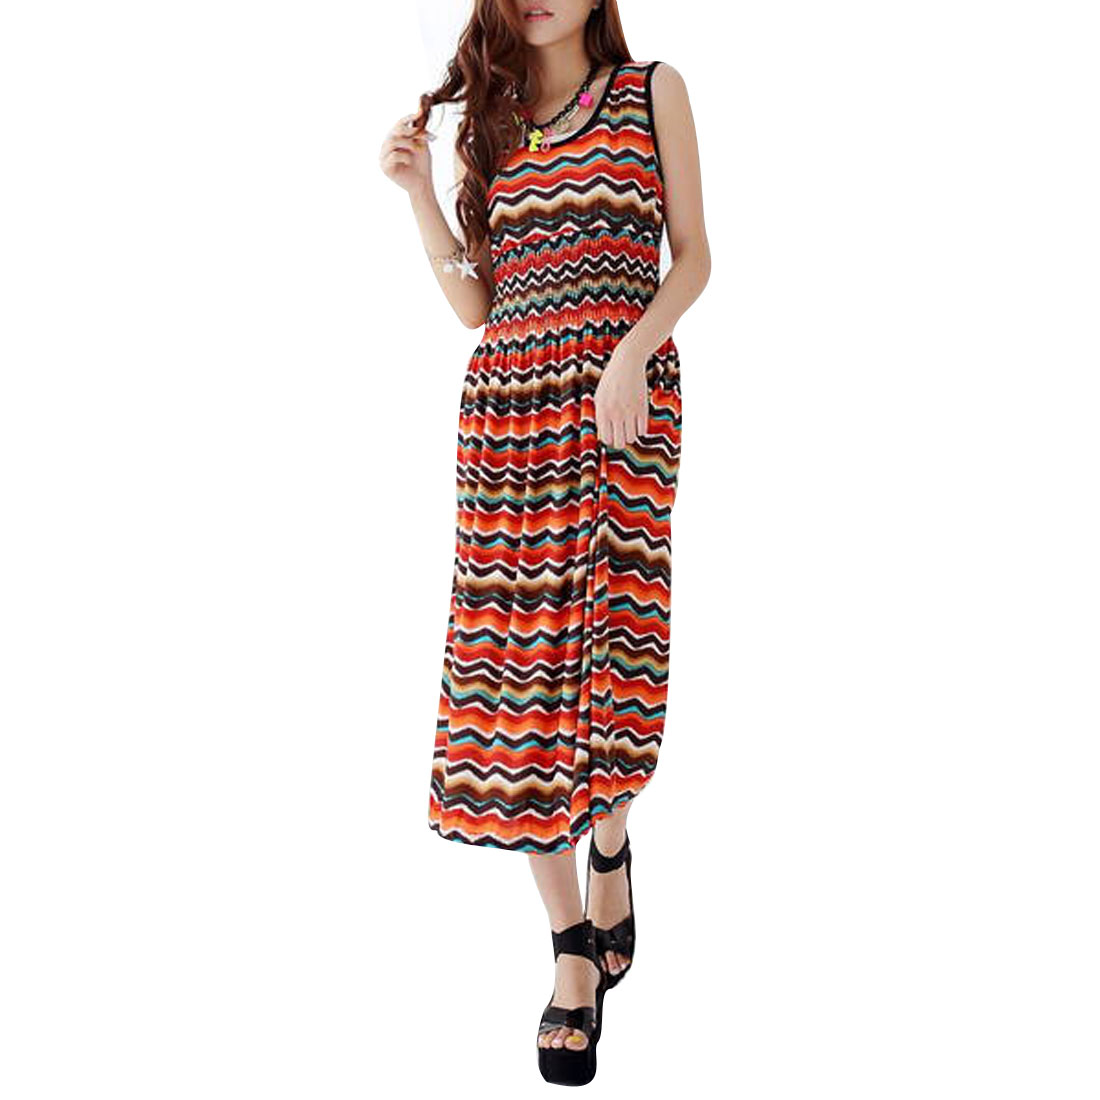 Lady Semi-sheer Sleeveless Zig Zag Pattern Multicolor Mid-calf Dress XS